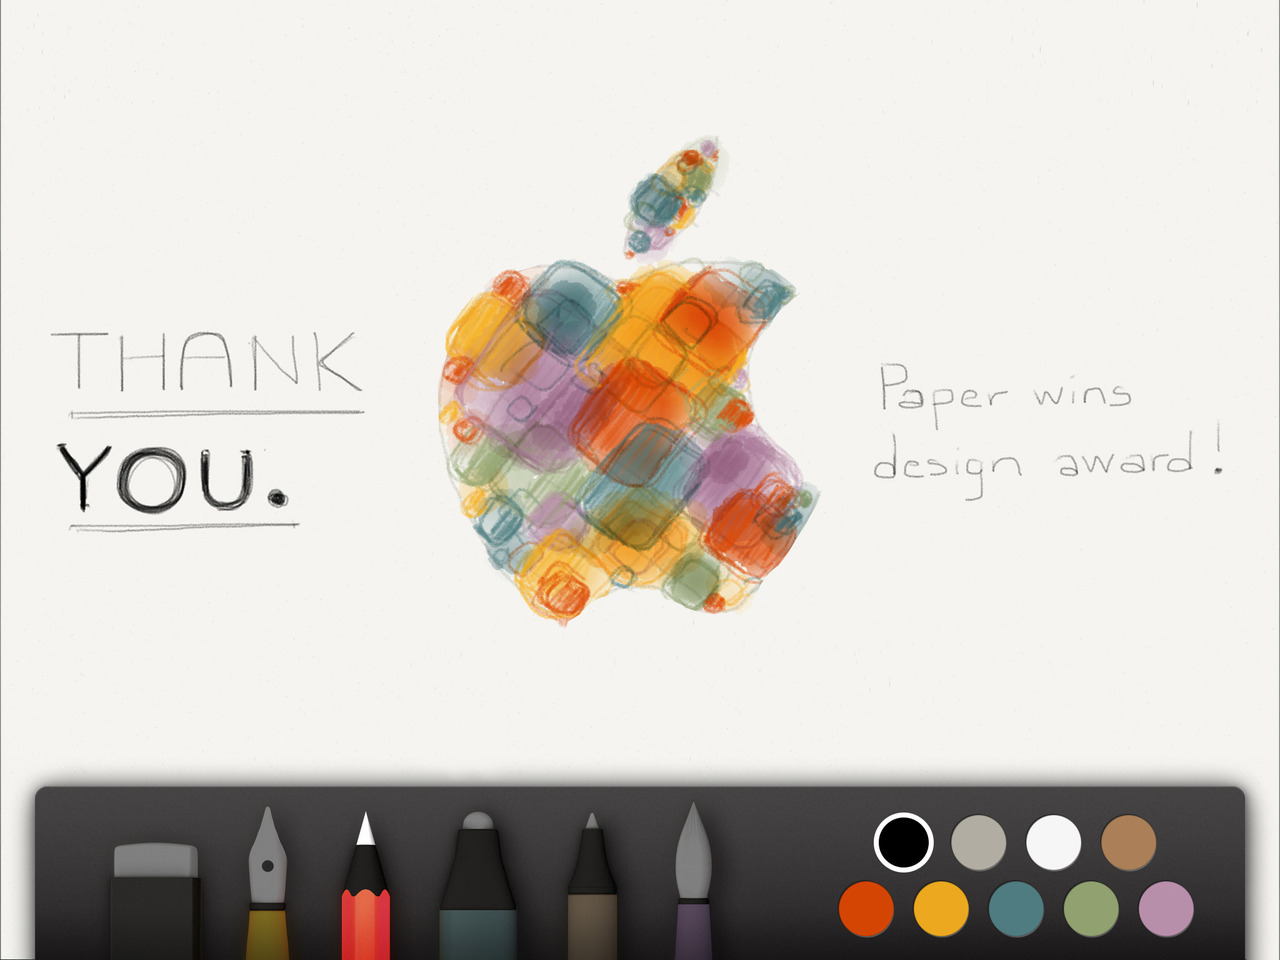 The beautiful Paper app by FiftyThree just won Apple's Design Award. Get the app for iPad if you have not already! fiftythreenyc:  Apple Design Award Just over a year ago we started developing Paper. Our idea: to make mobile creation better. Today at WWDC, Apple recognized our work with an Apple Design Award. Thank you. It really could not have happened without the support of Apple's platforms and the ingenuity of your creations. Paper is where ideas begin… and in the truest sense of the word, we're only beginning. Ideas have places to go. We want to be part of that voyage, and we hope you will too. Keep creating. We're hiring.